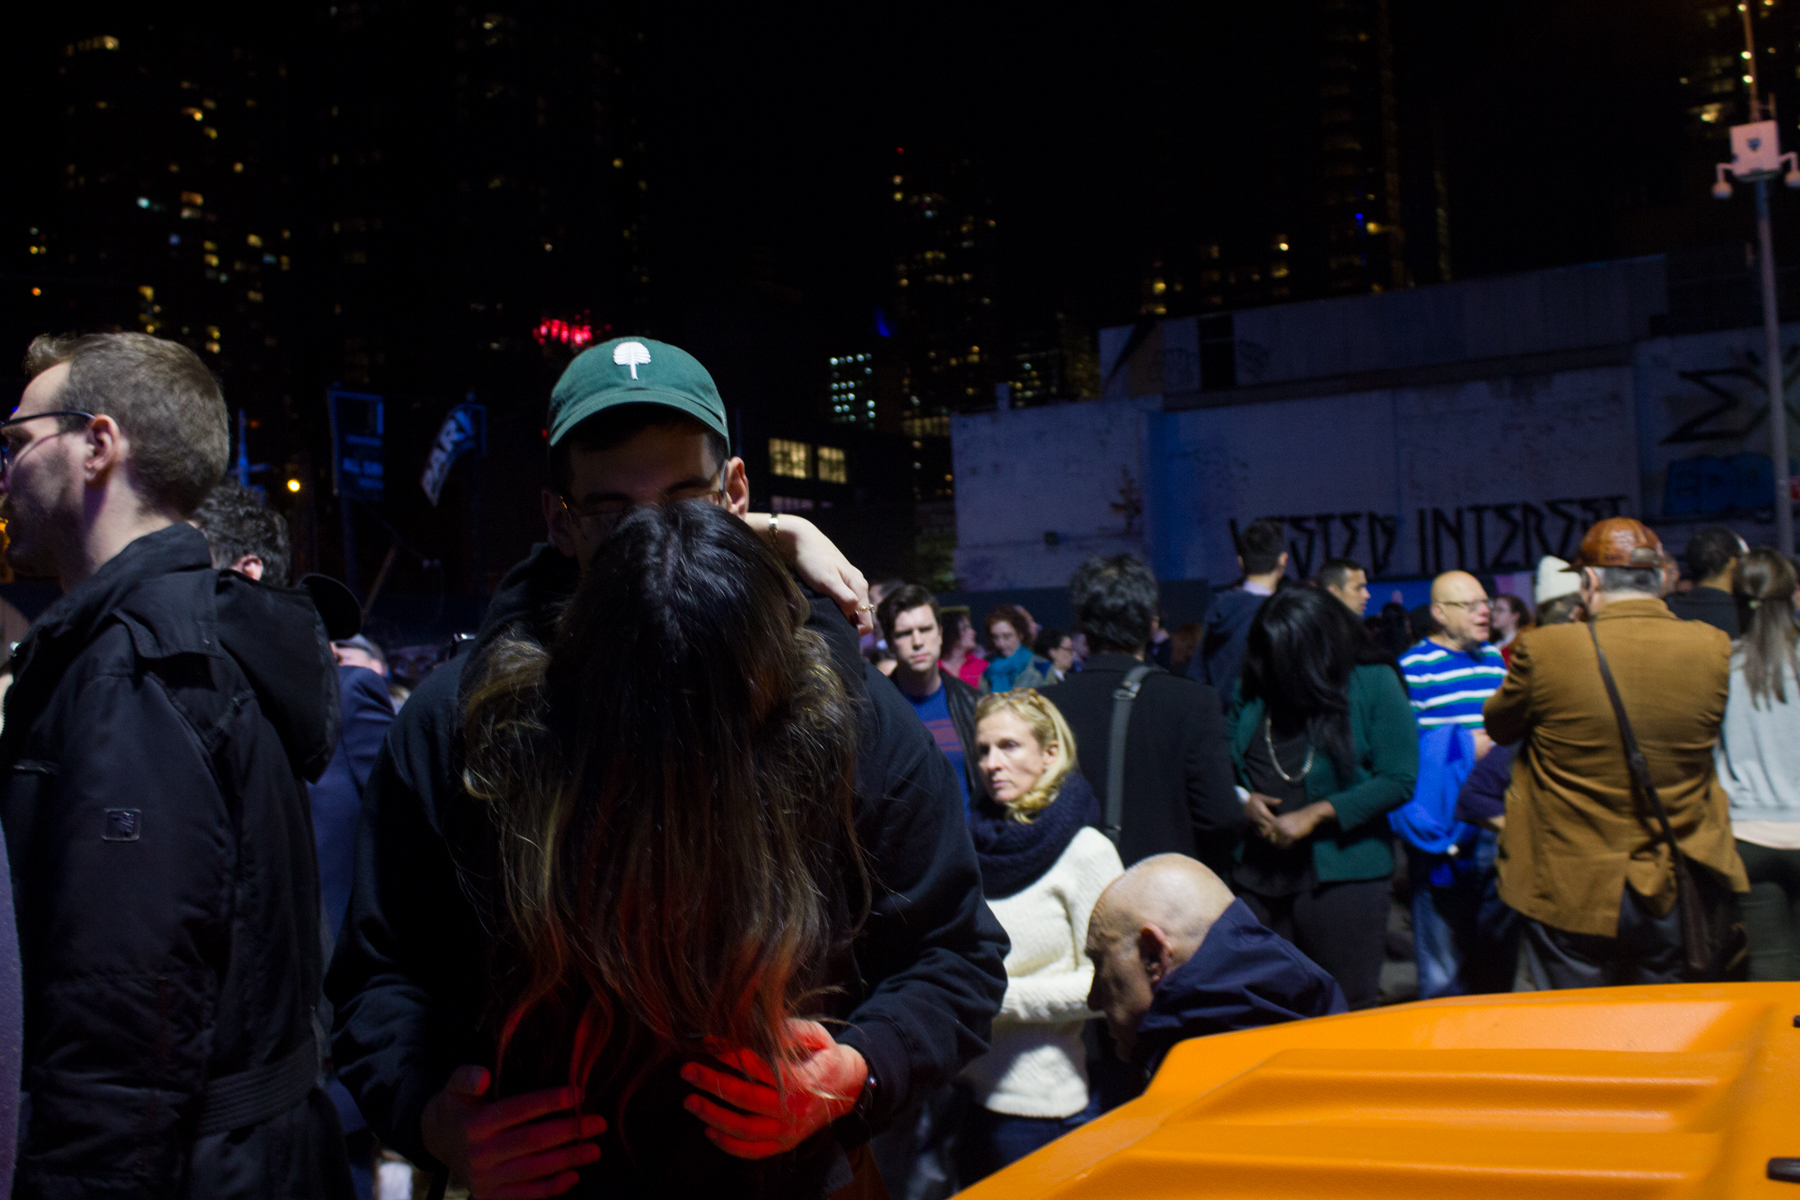 A couple kiss upon finding one another outside of the Javits Center.